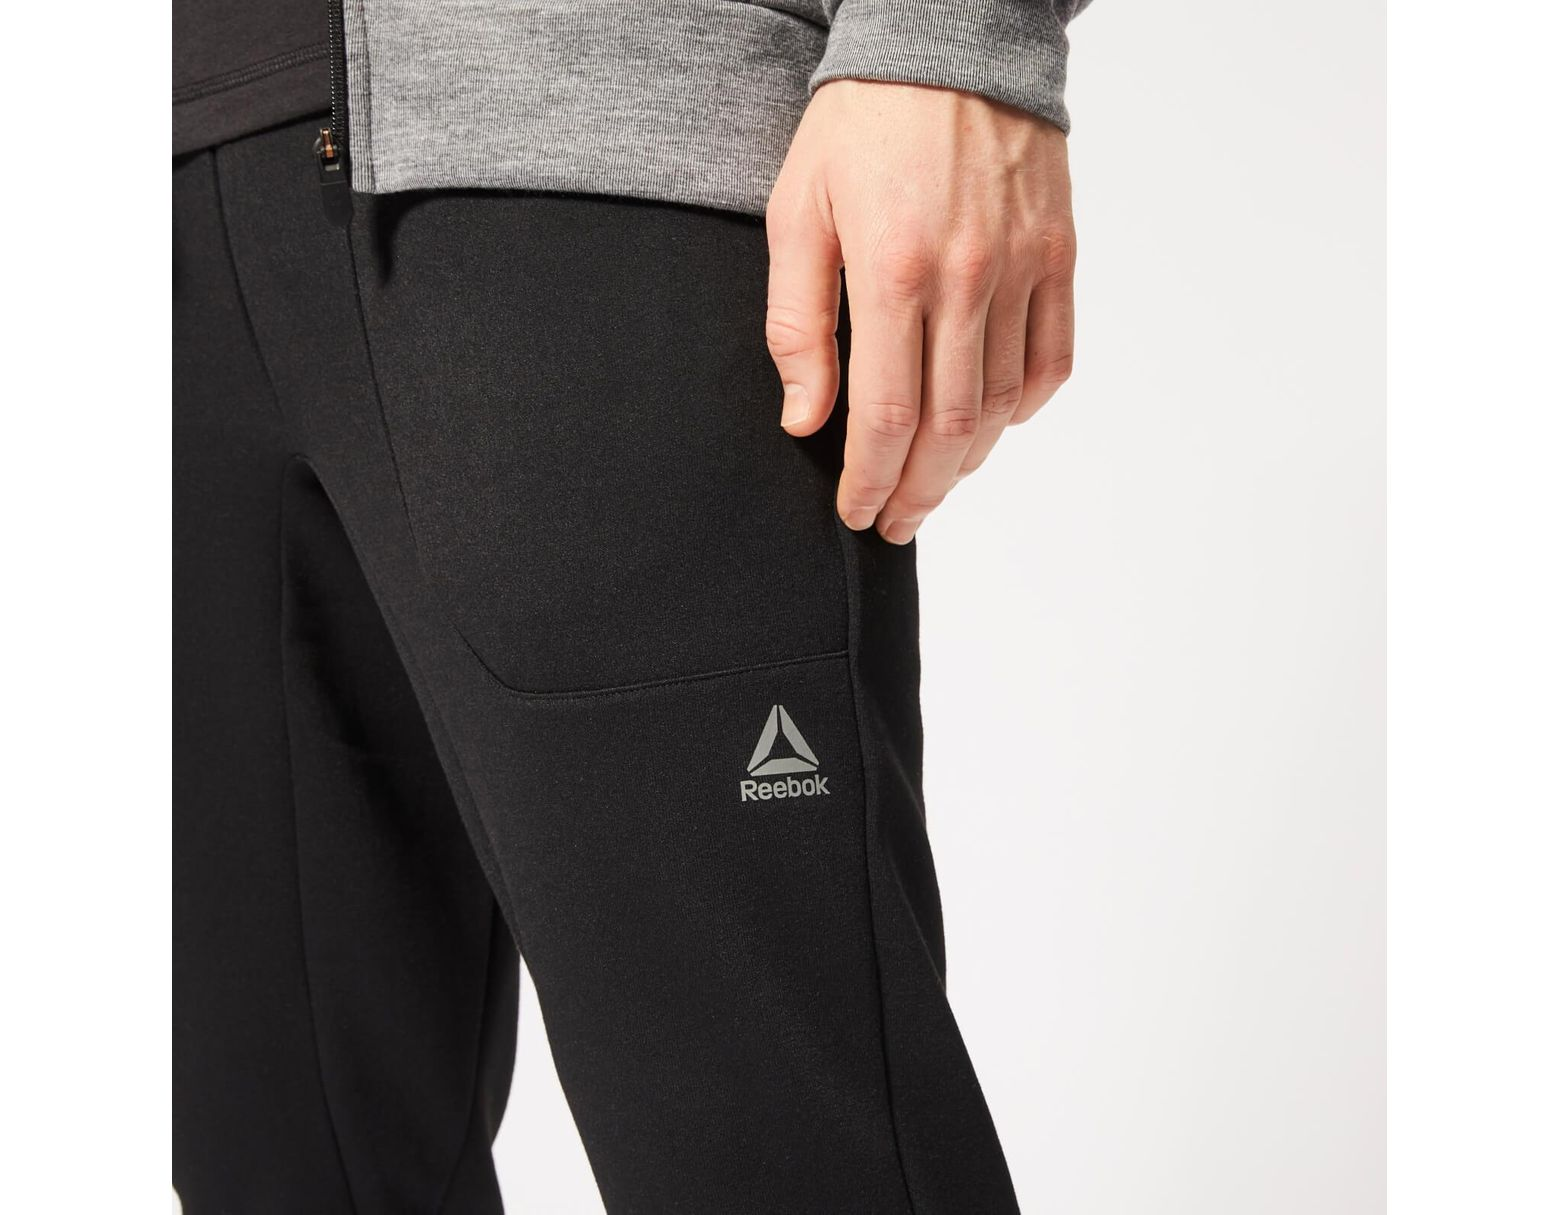 cea63813a8 Men's Black Wor Melange Double Knit Sweatpants